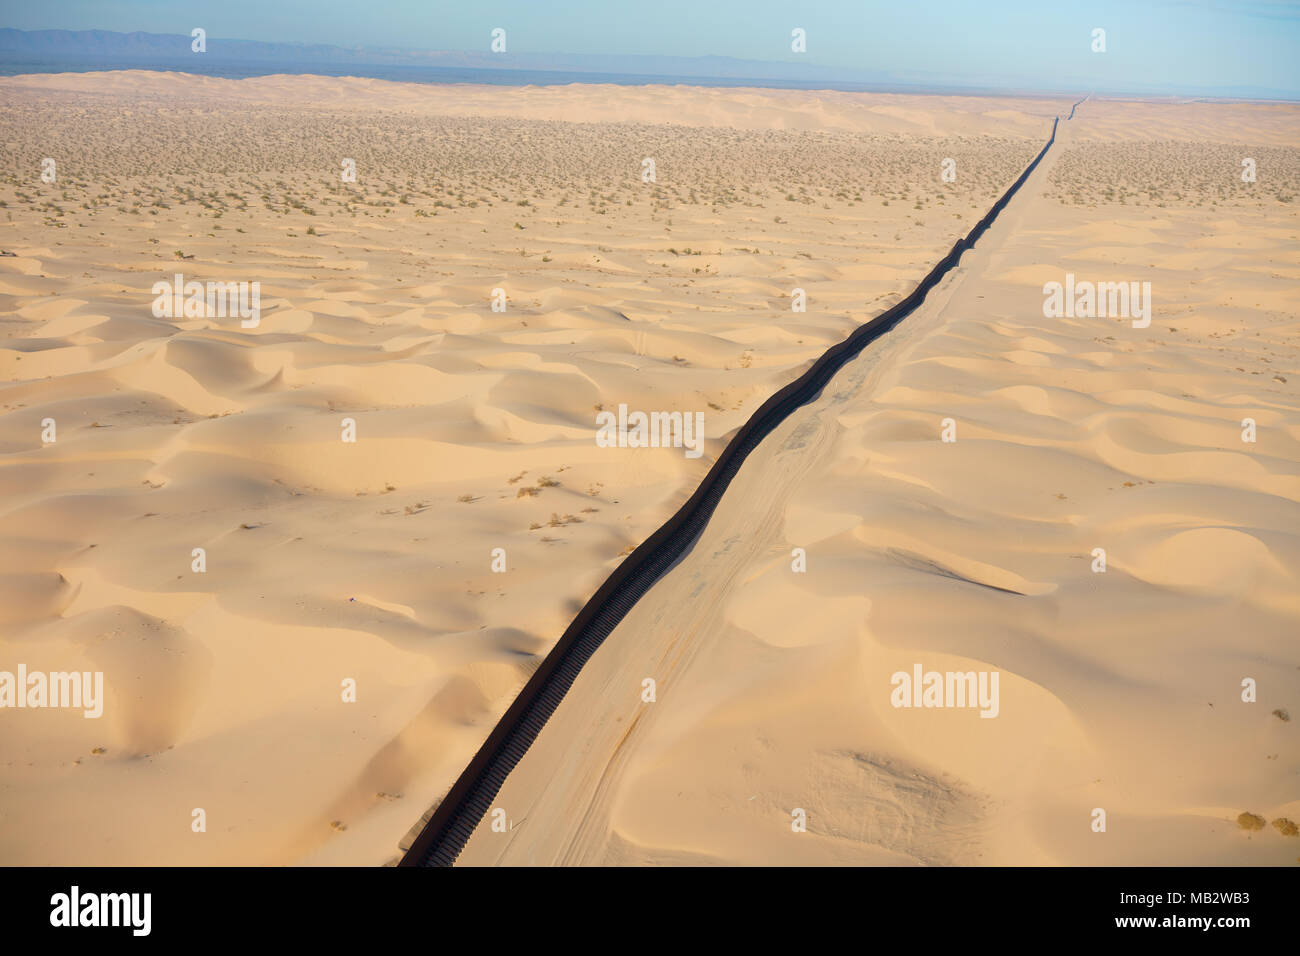 INTERNATIONAL BORDER: MEXICO - UNITED STATES (aerial view). Algodones Dunes in the Sonoran Desert, Baja California, Mexico (left of wall). - Stock Image